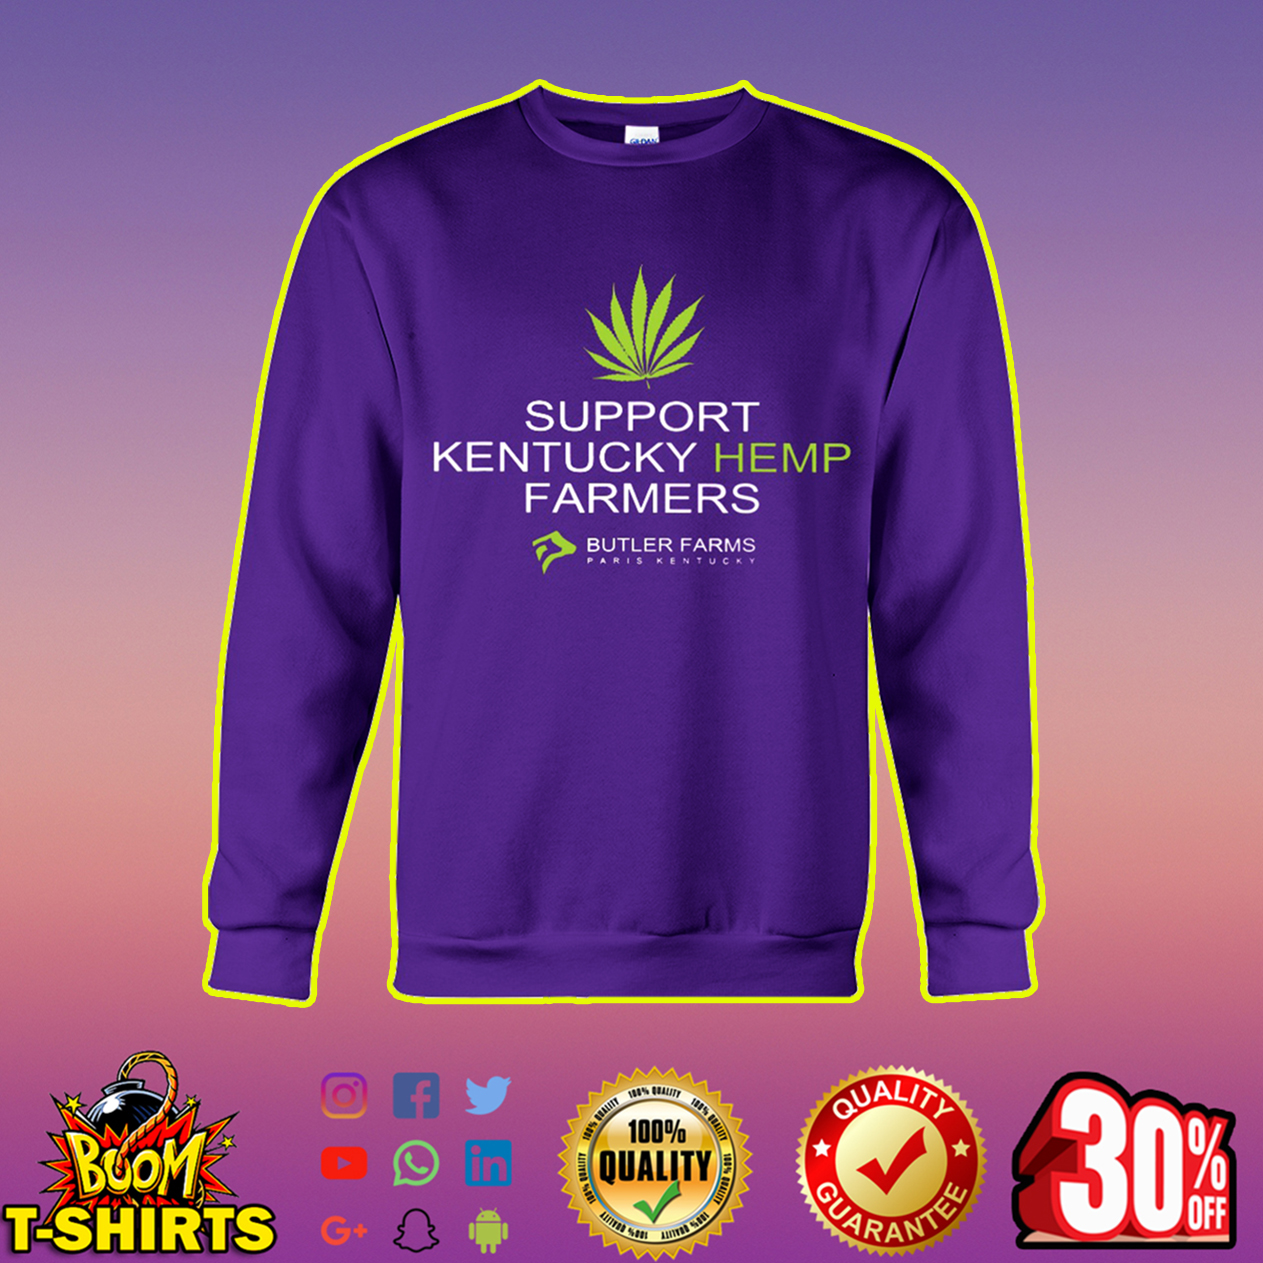 Support Kentucky Hemp Farmers sweatshirt